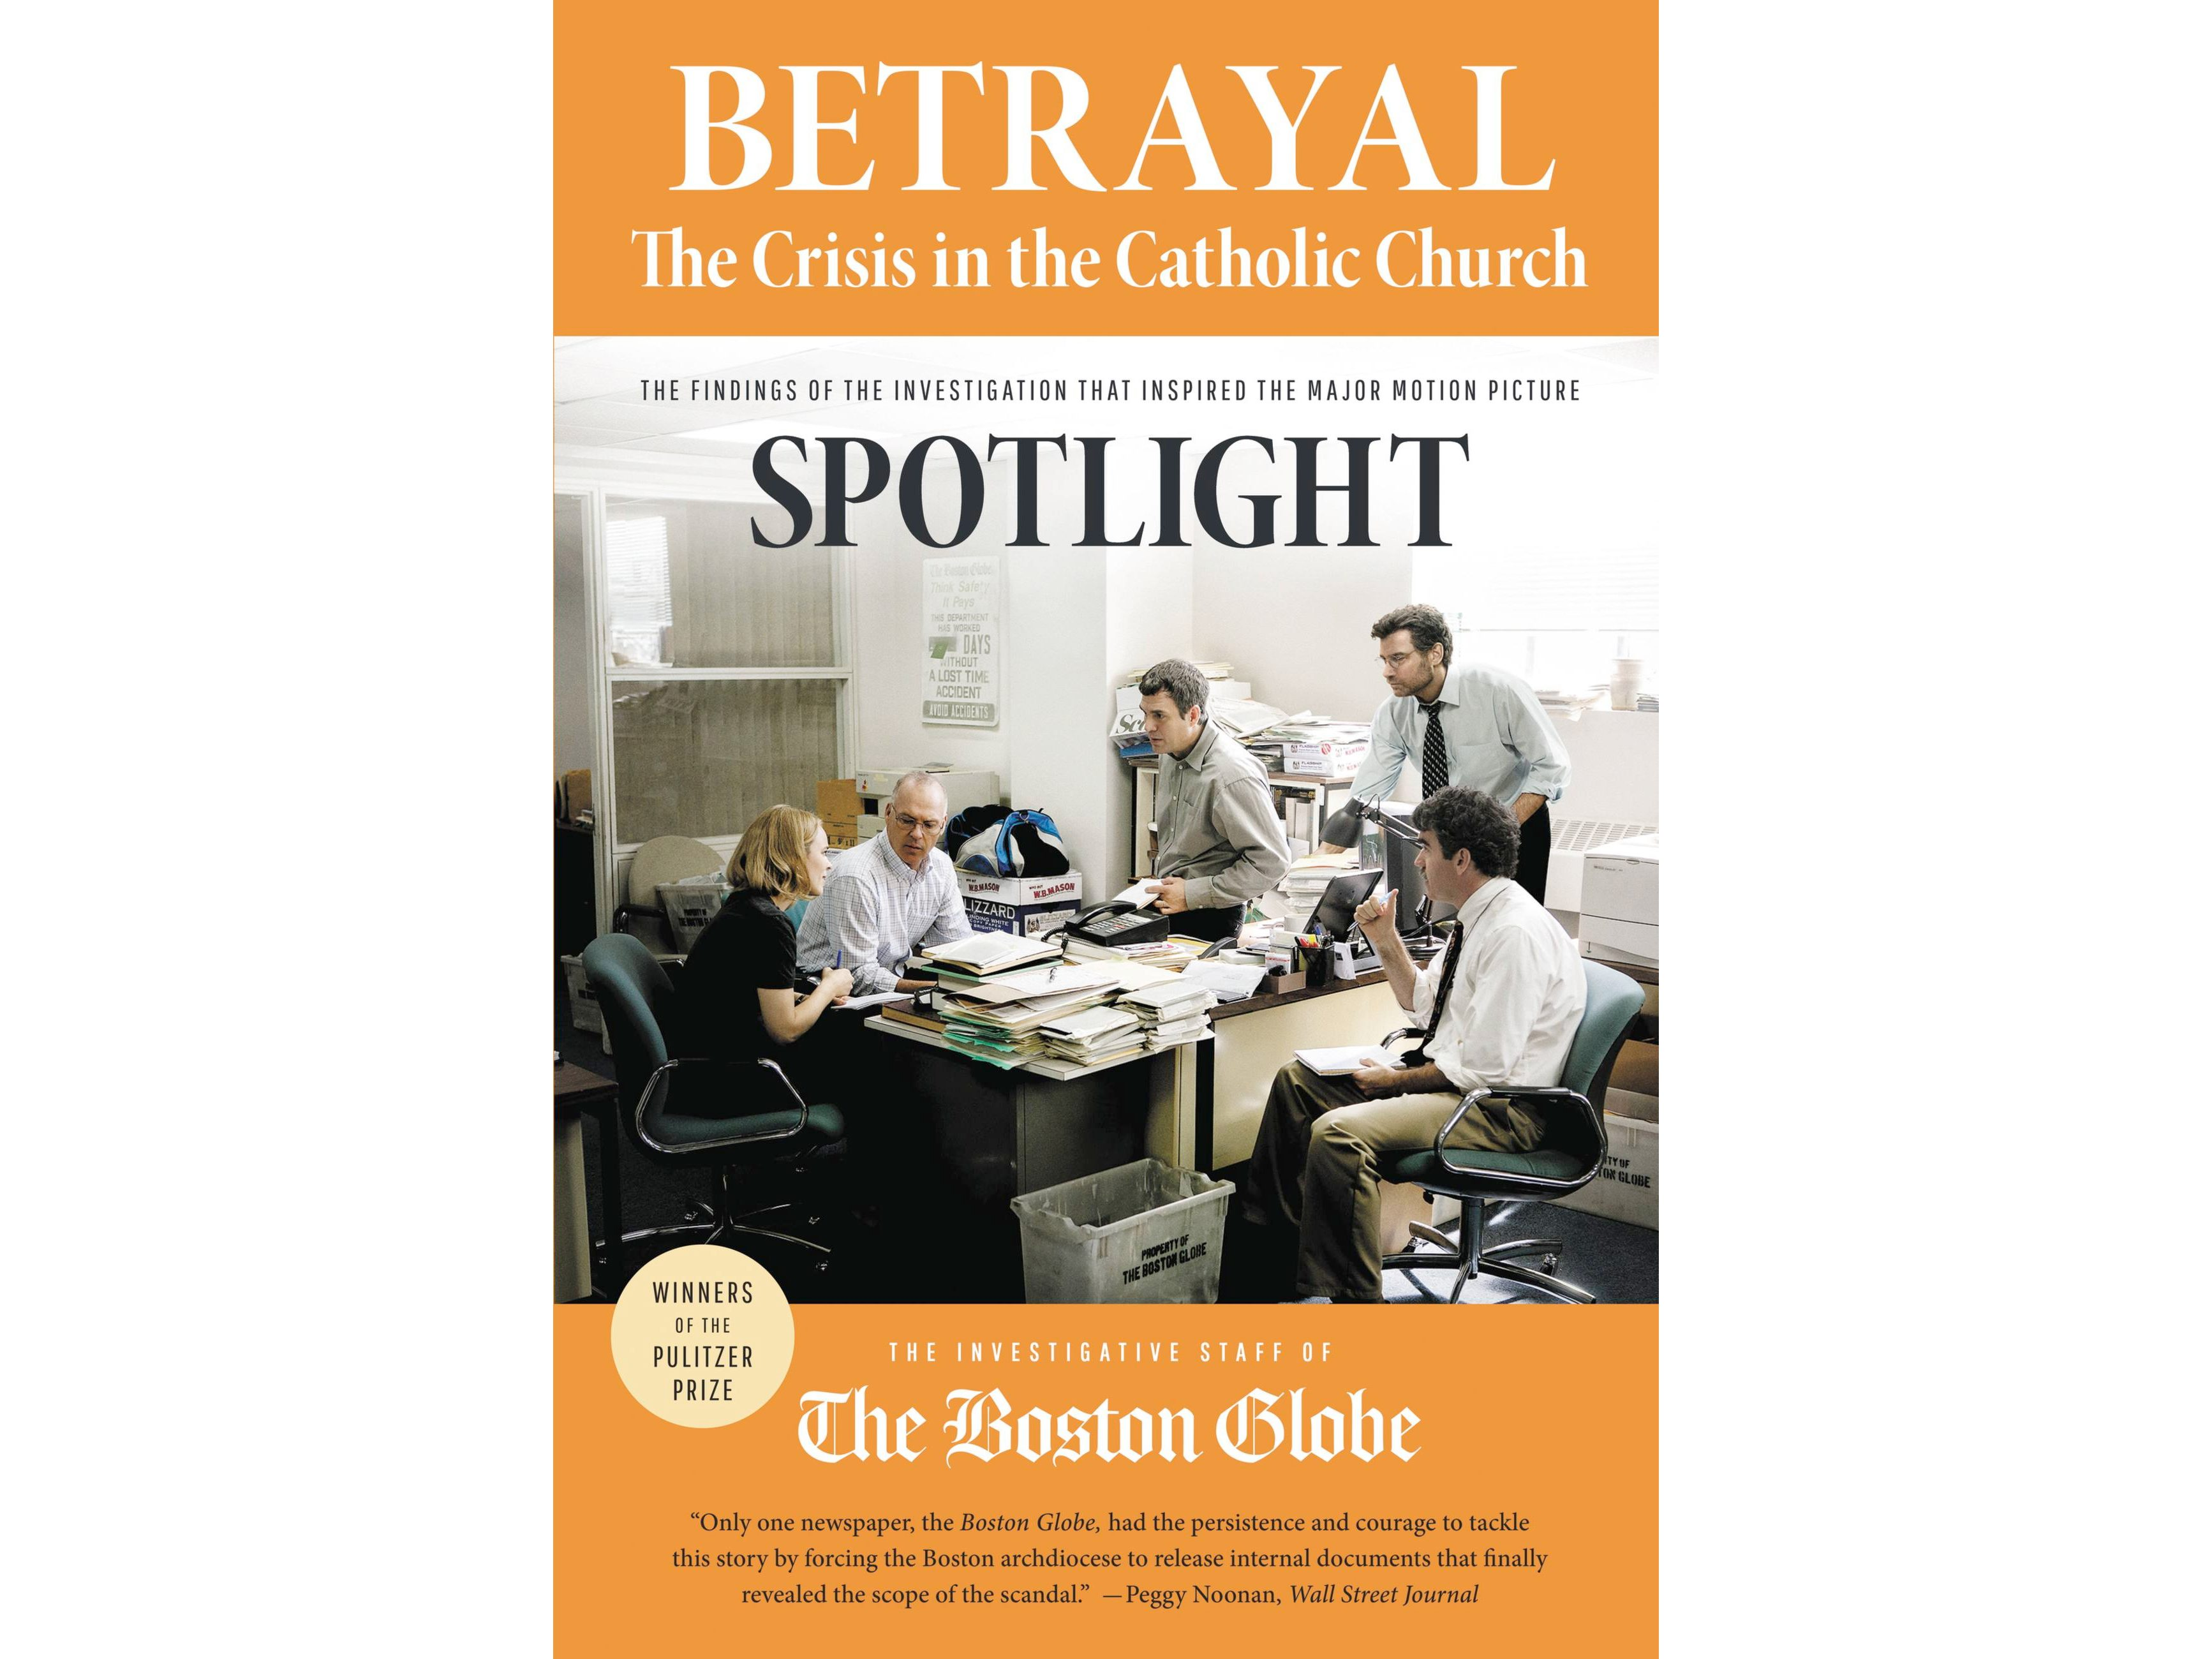 4. Betrayal: The Crisis in the Catholic Church by the Investigative Staff of the Boston Globe